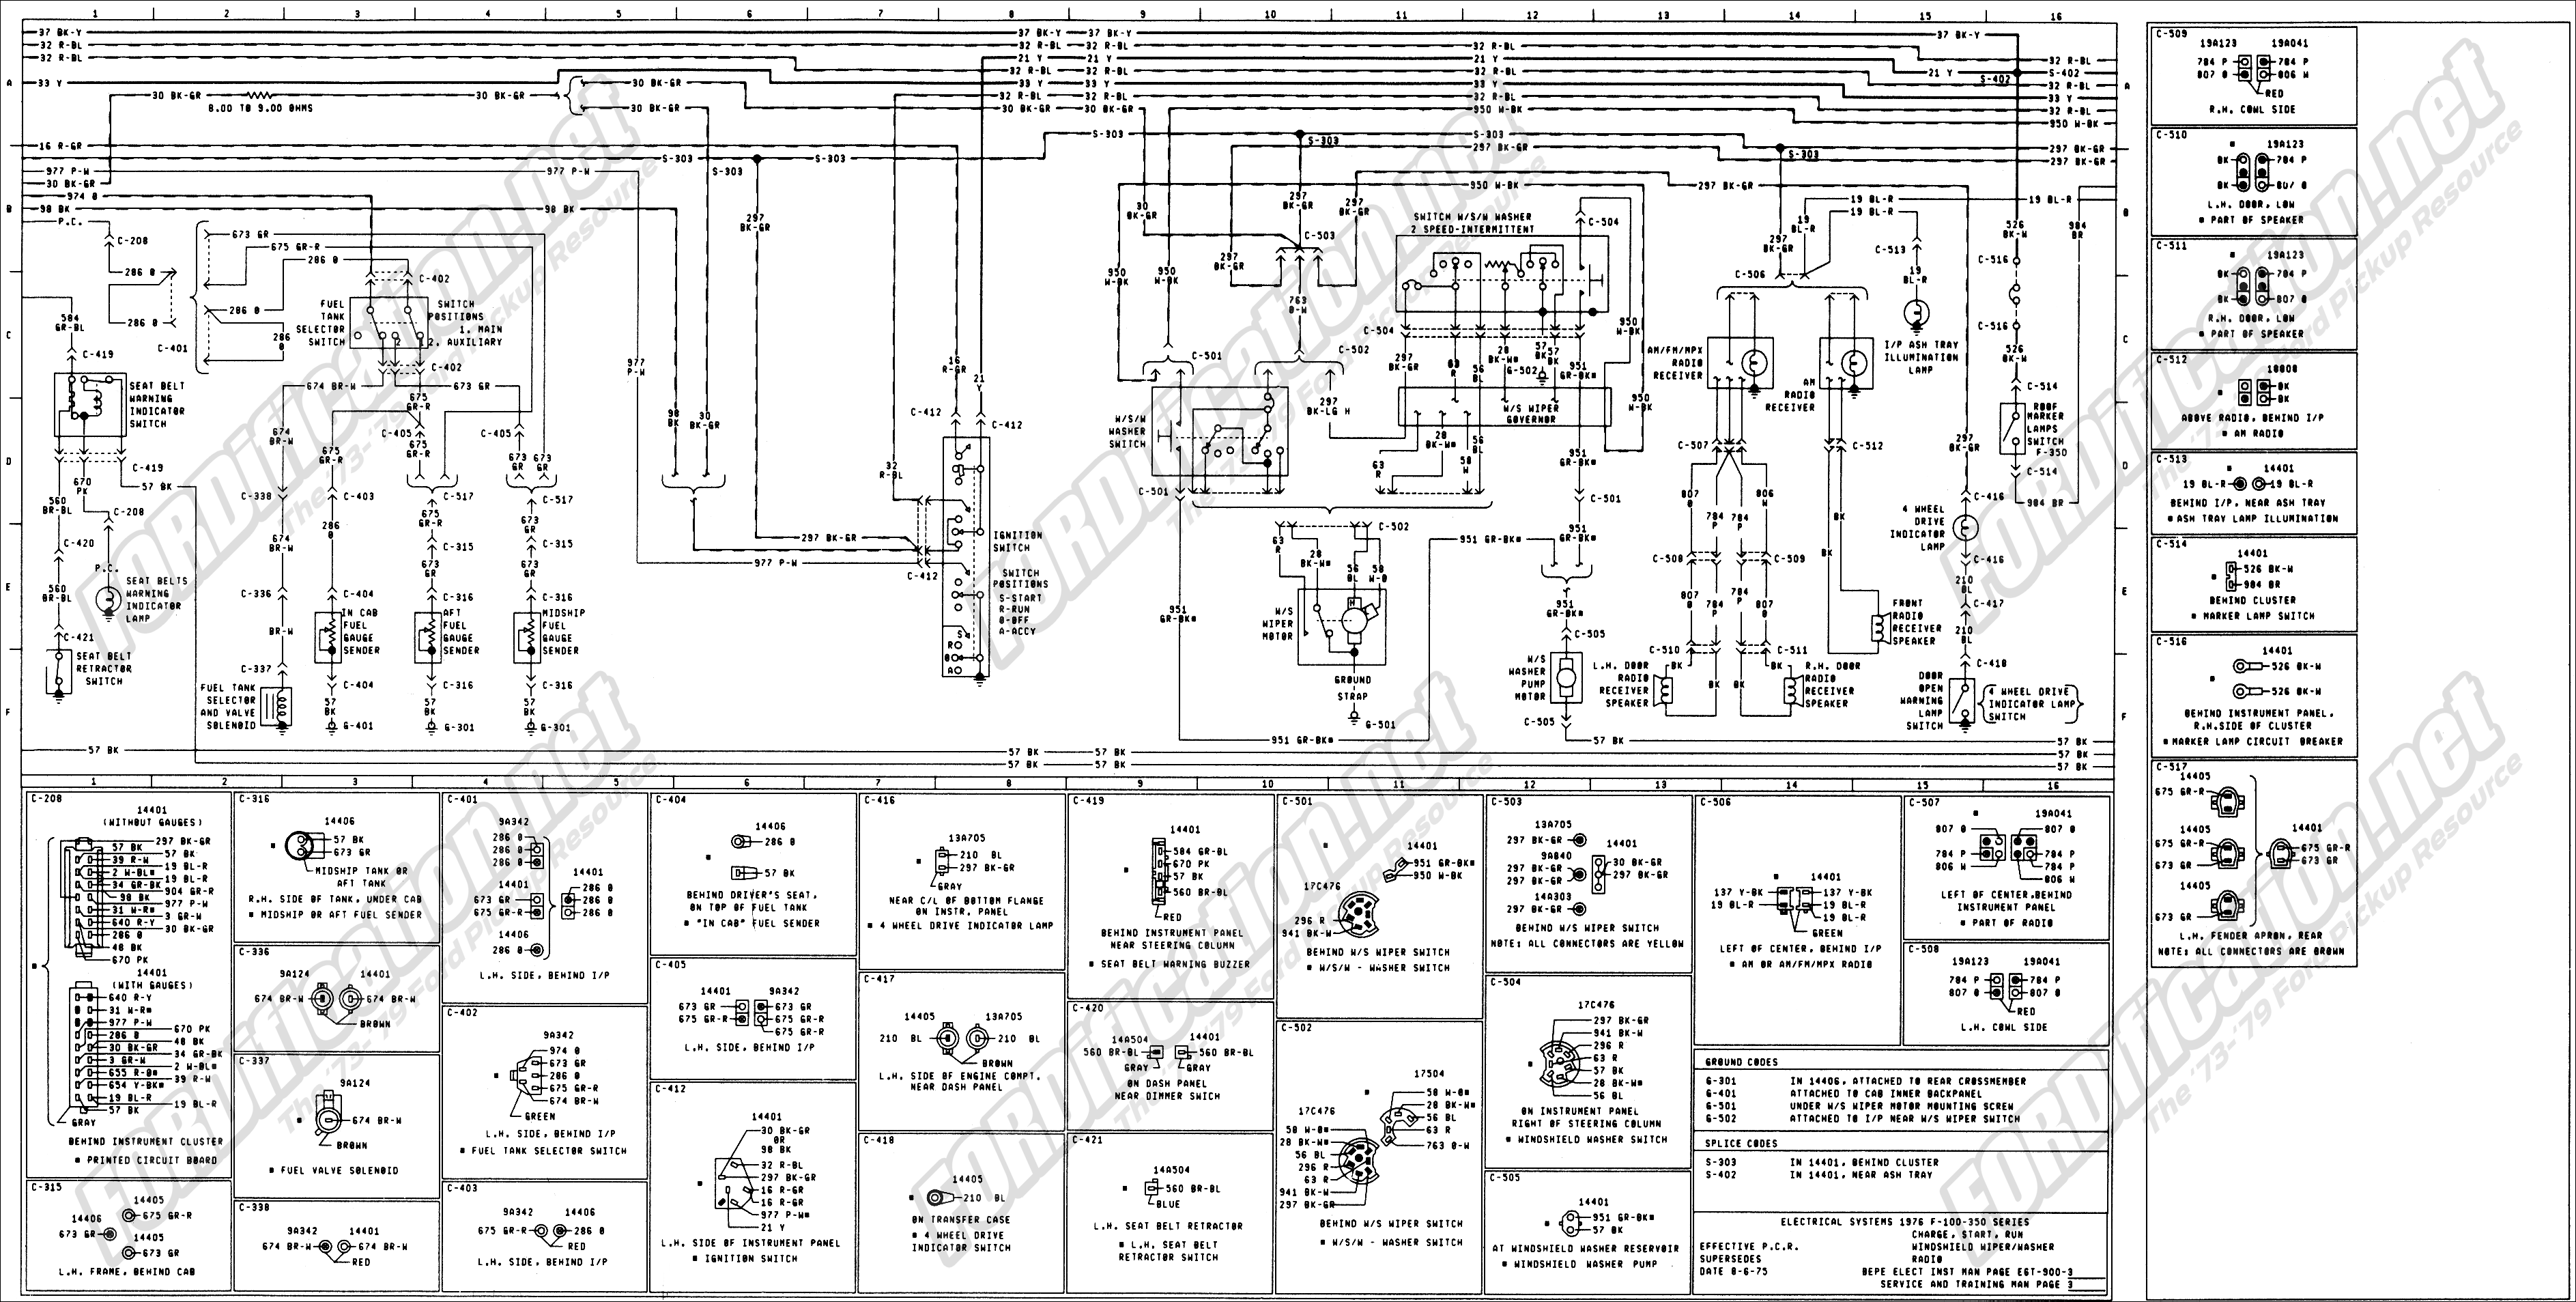 1973 1979 ford truck wiring diagrams schematics 1999 Ford Expedition Fuse  Diagram 2004 Ford Crown Victoria Fuse Box Diagram